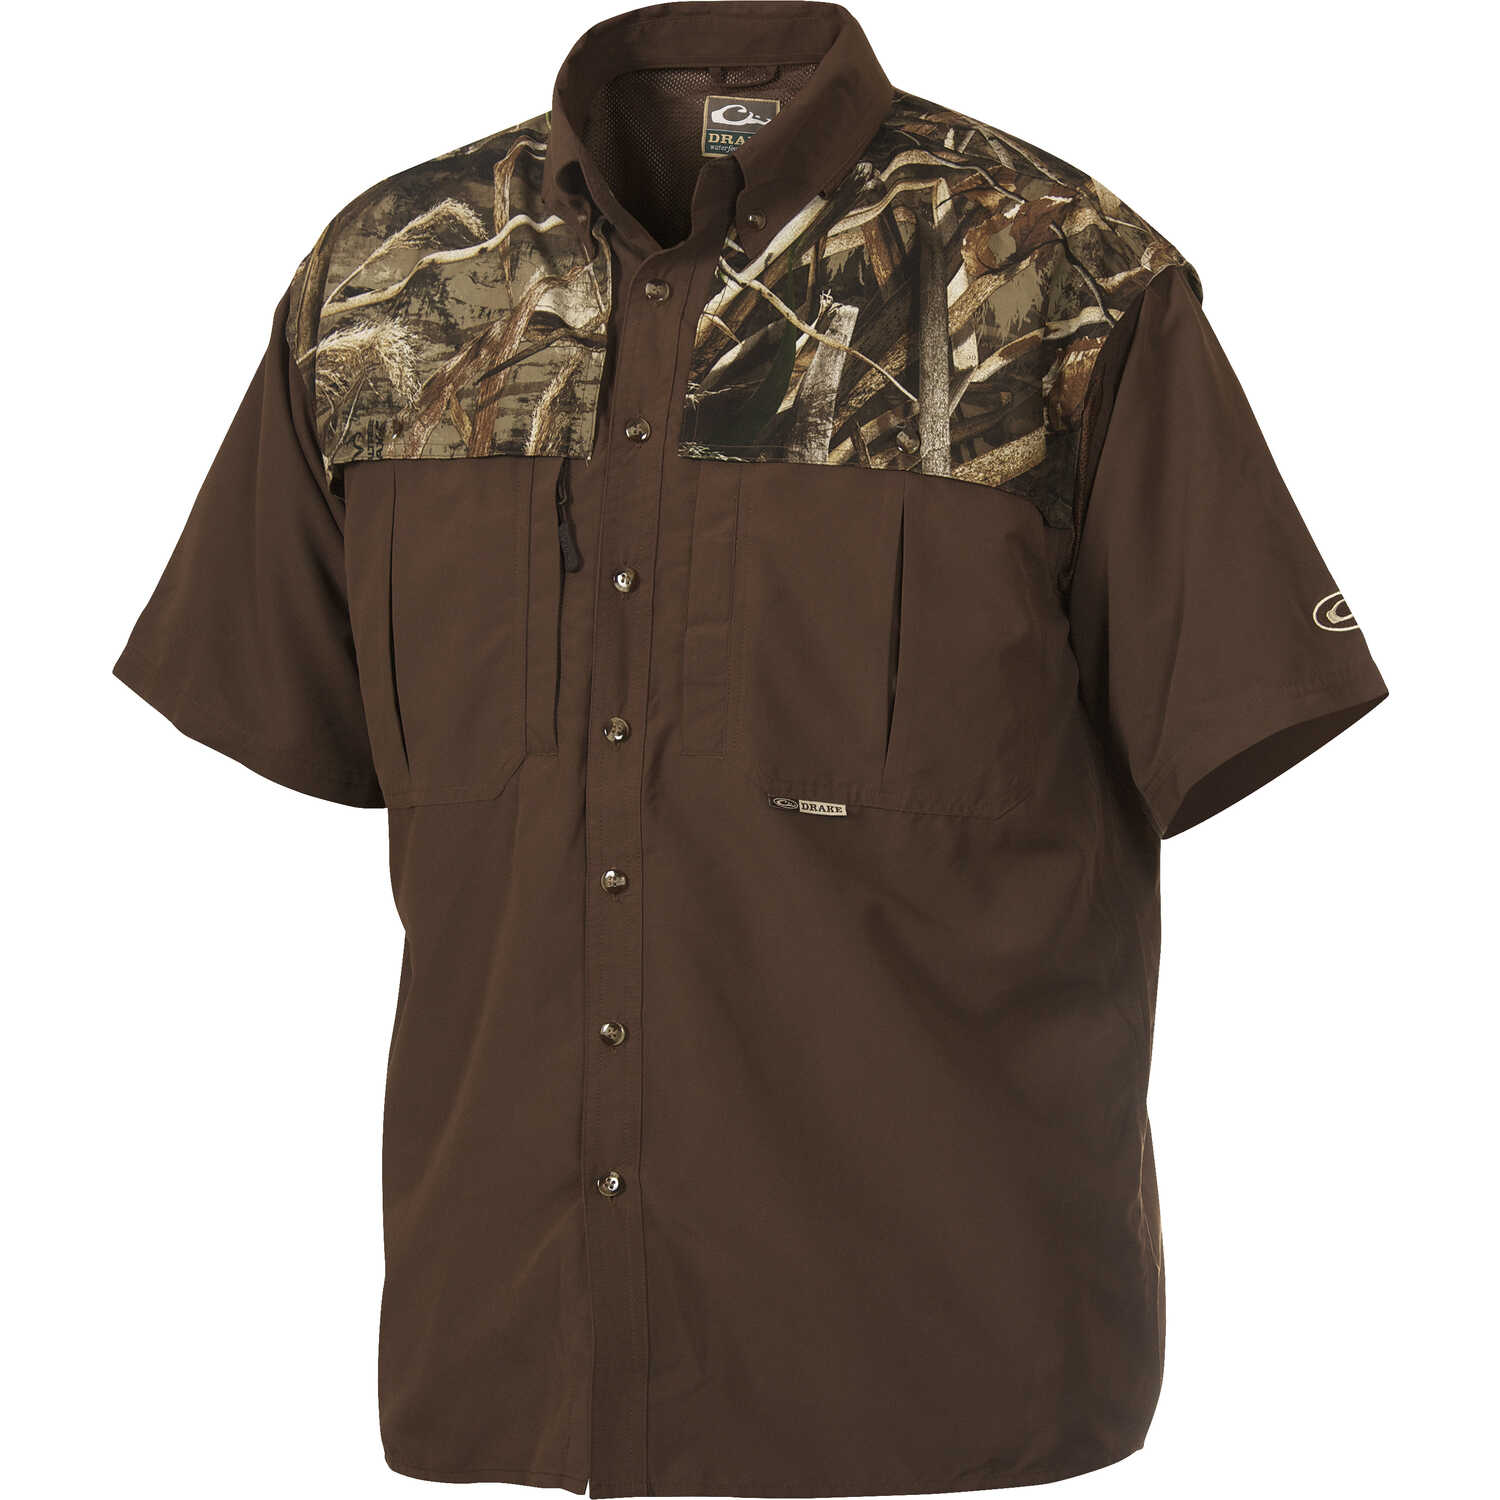 Drake  EST Wingshooter  XL  Short Sleeve  Men's  Collared  Brown/Camo  Work Shirt